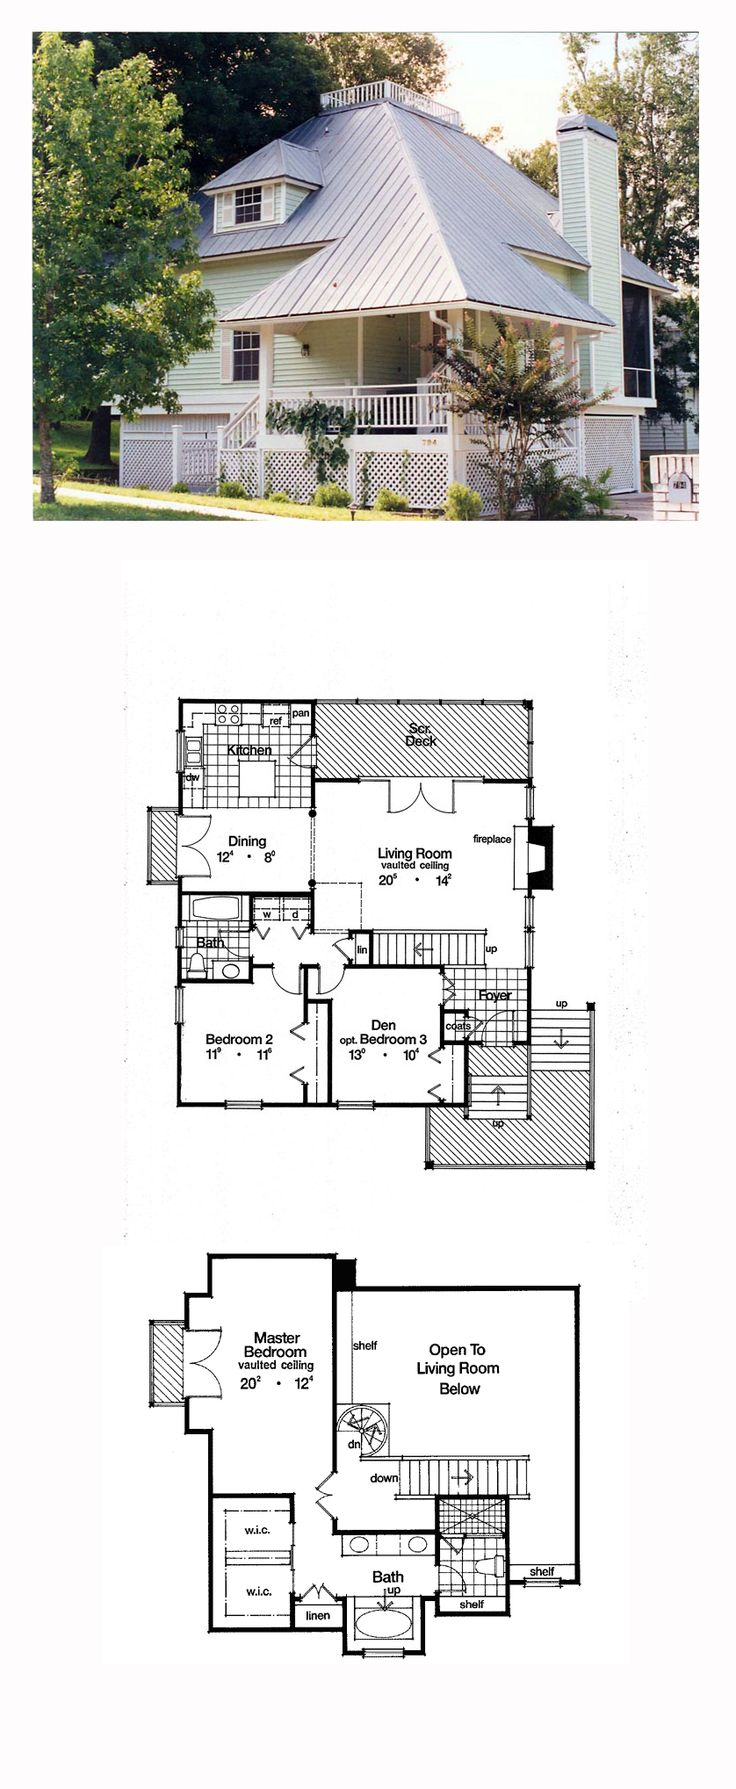 16 best images about florida cracker house plans on for House plans florida cracker style